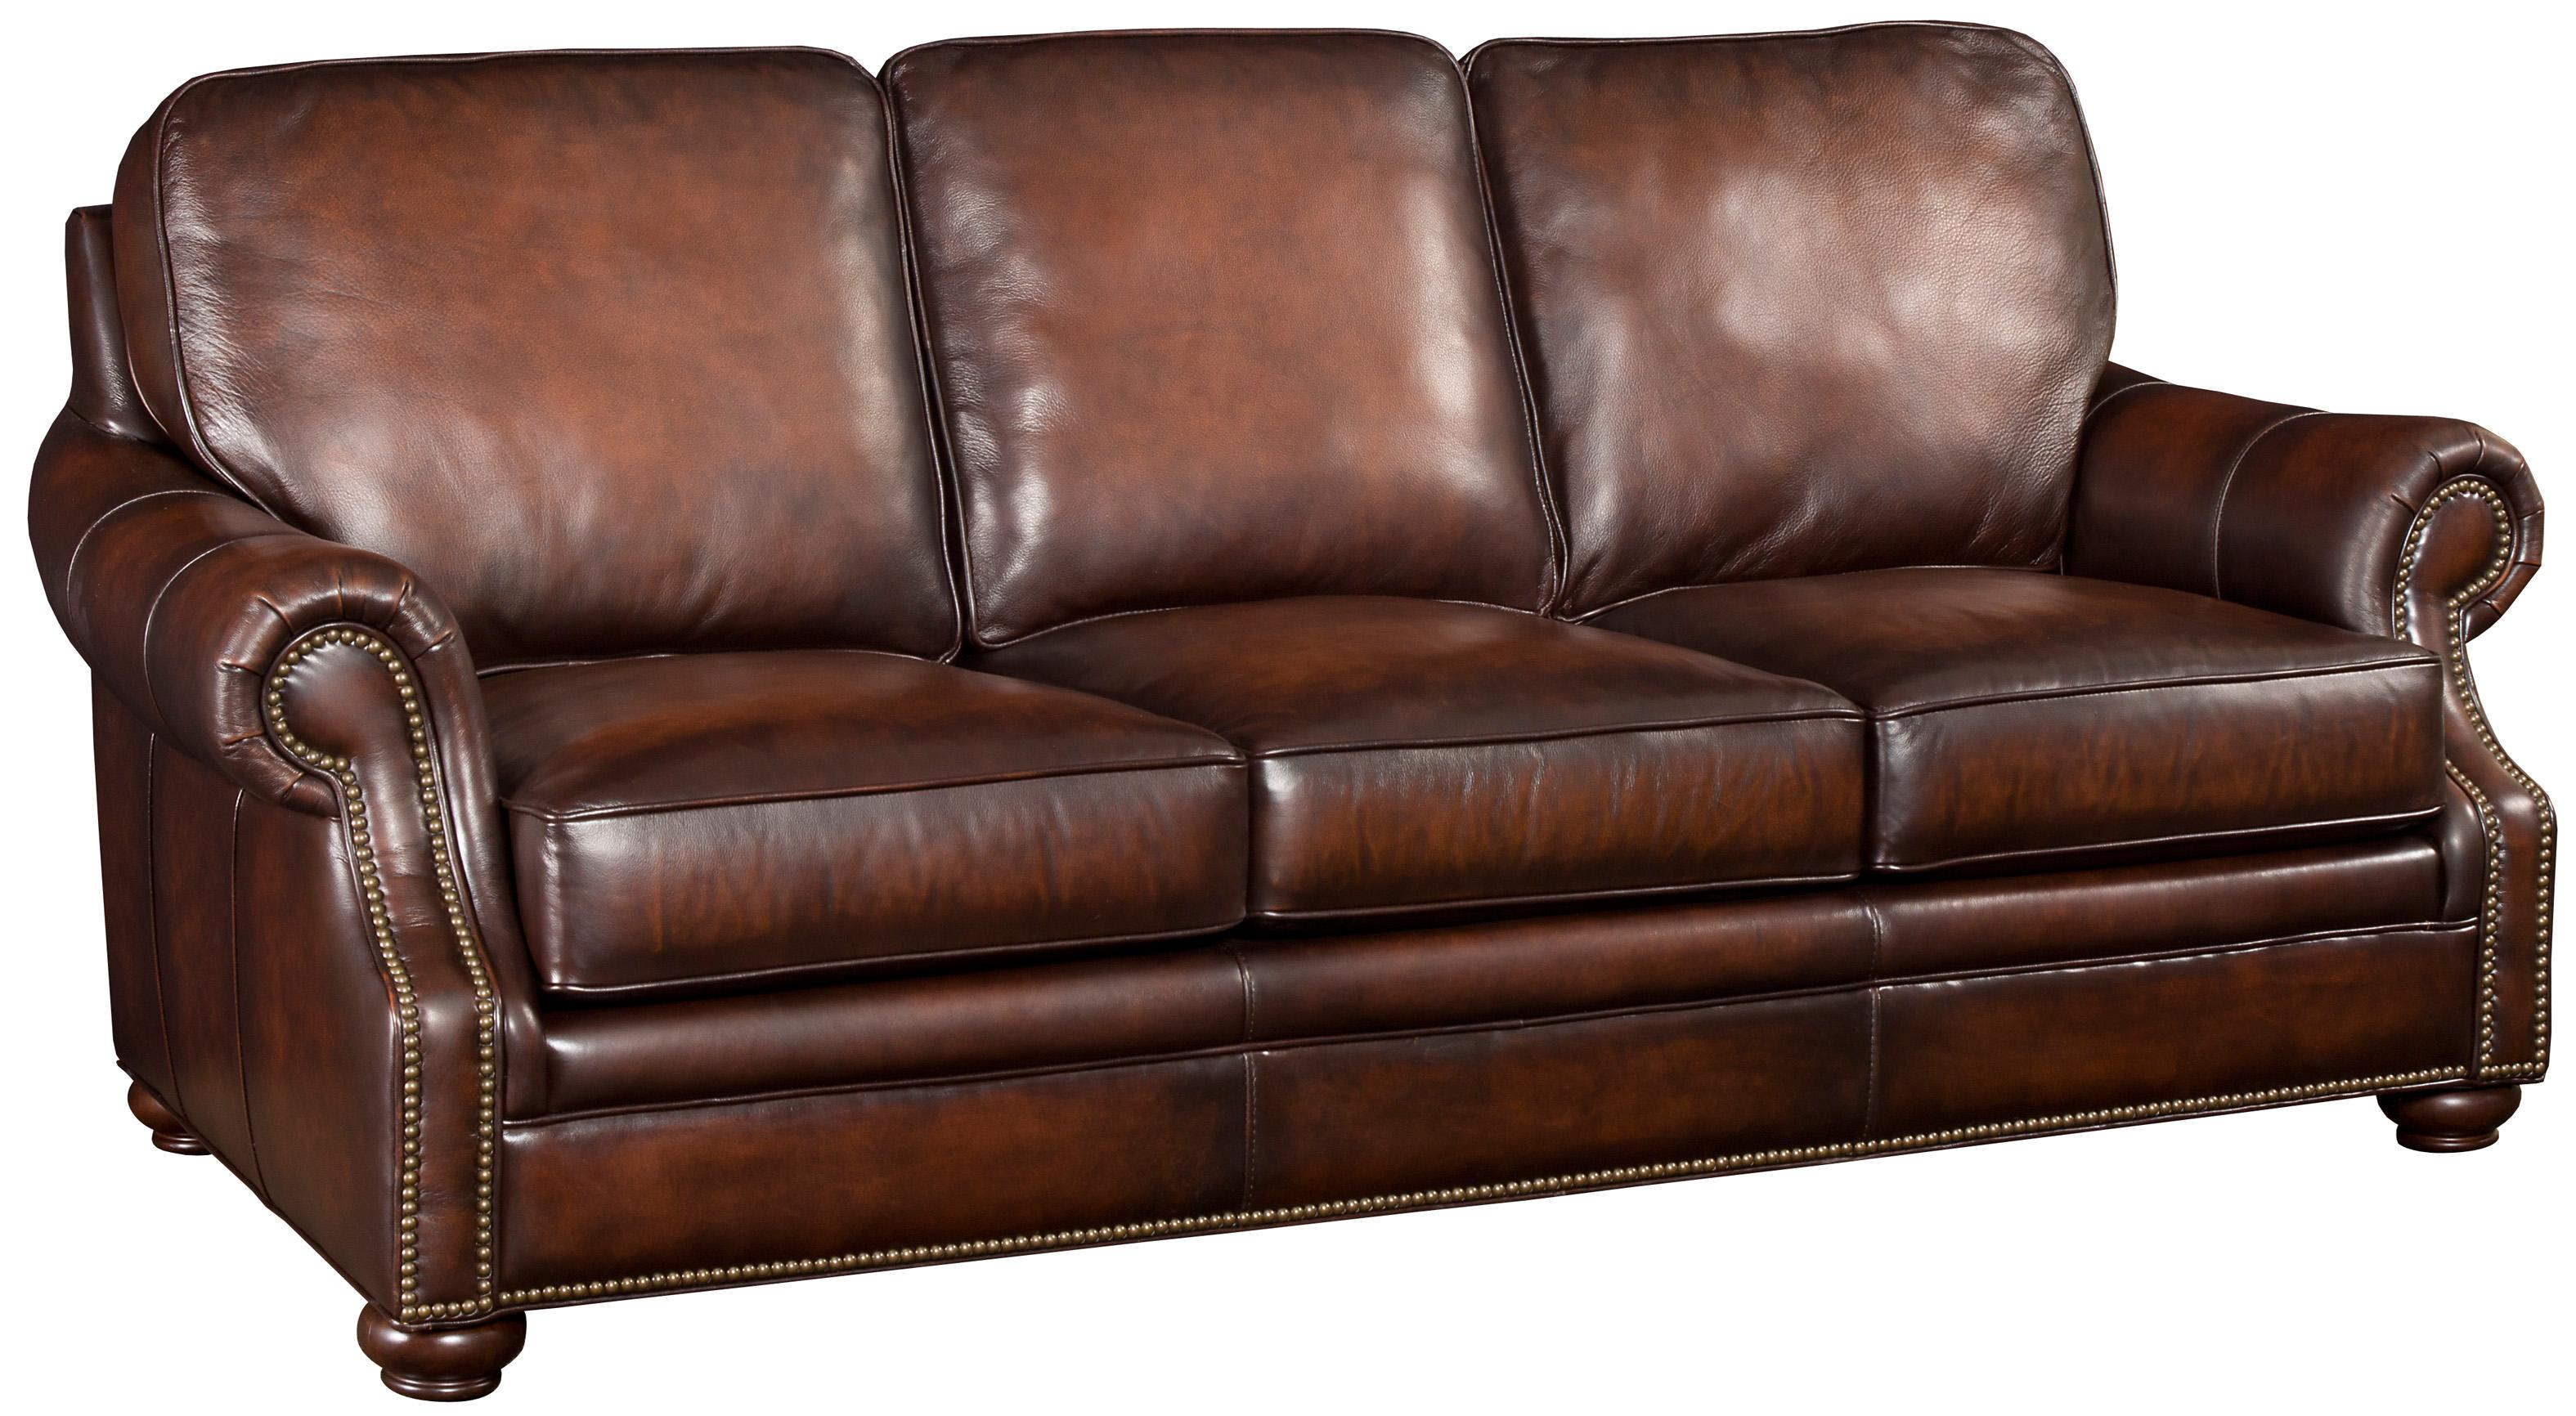 SS185 Leather Sofa by Hooker Furniture at Fisher Home Furnishings